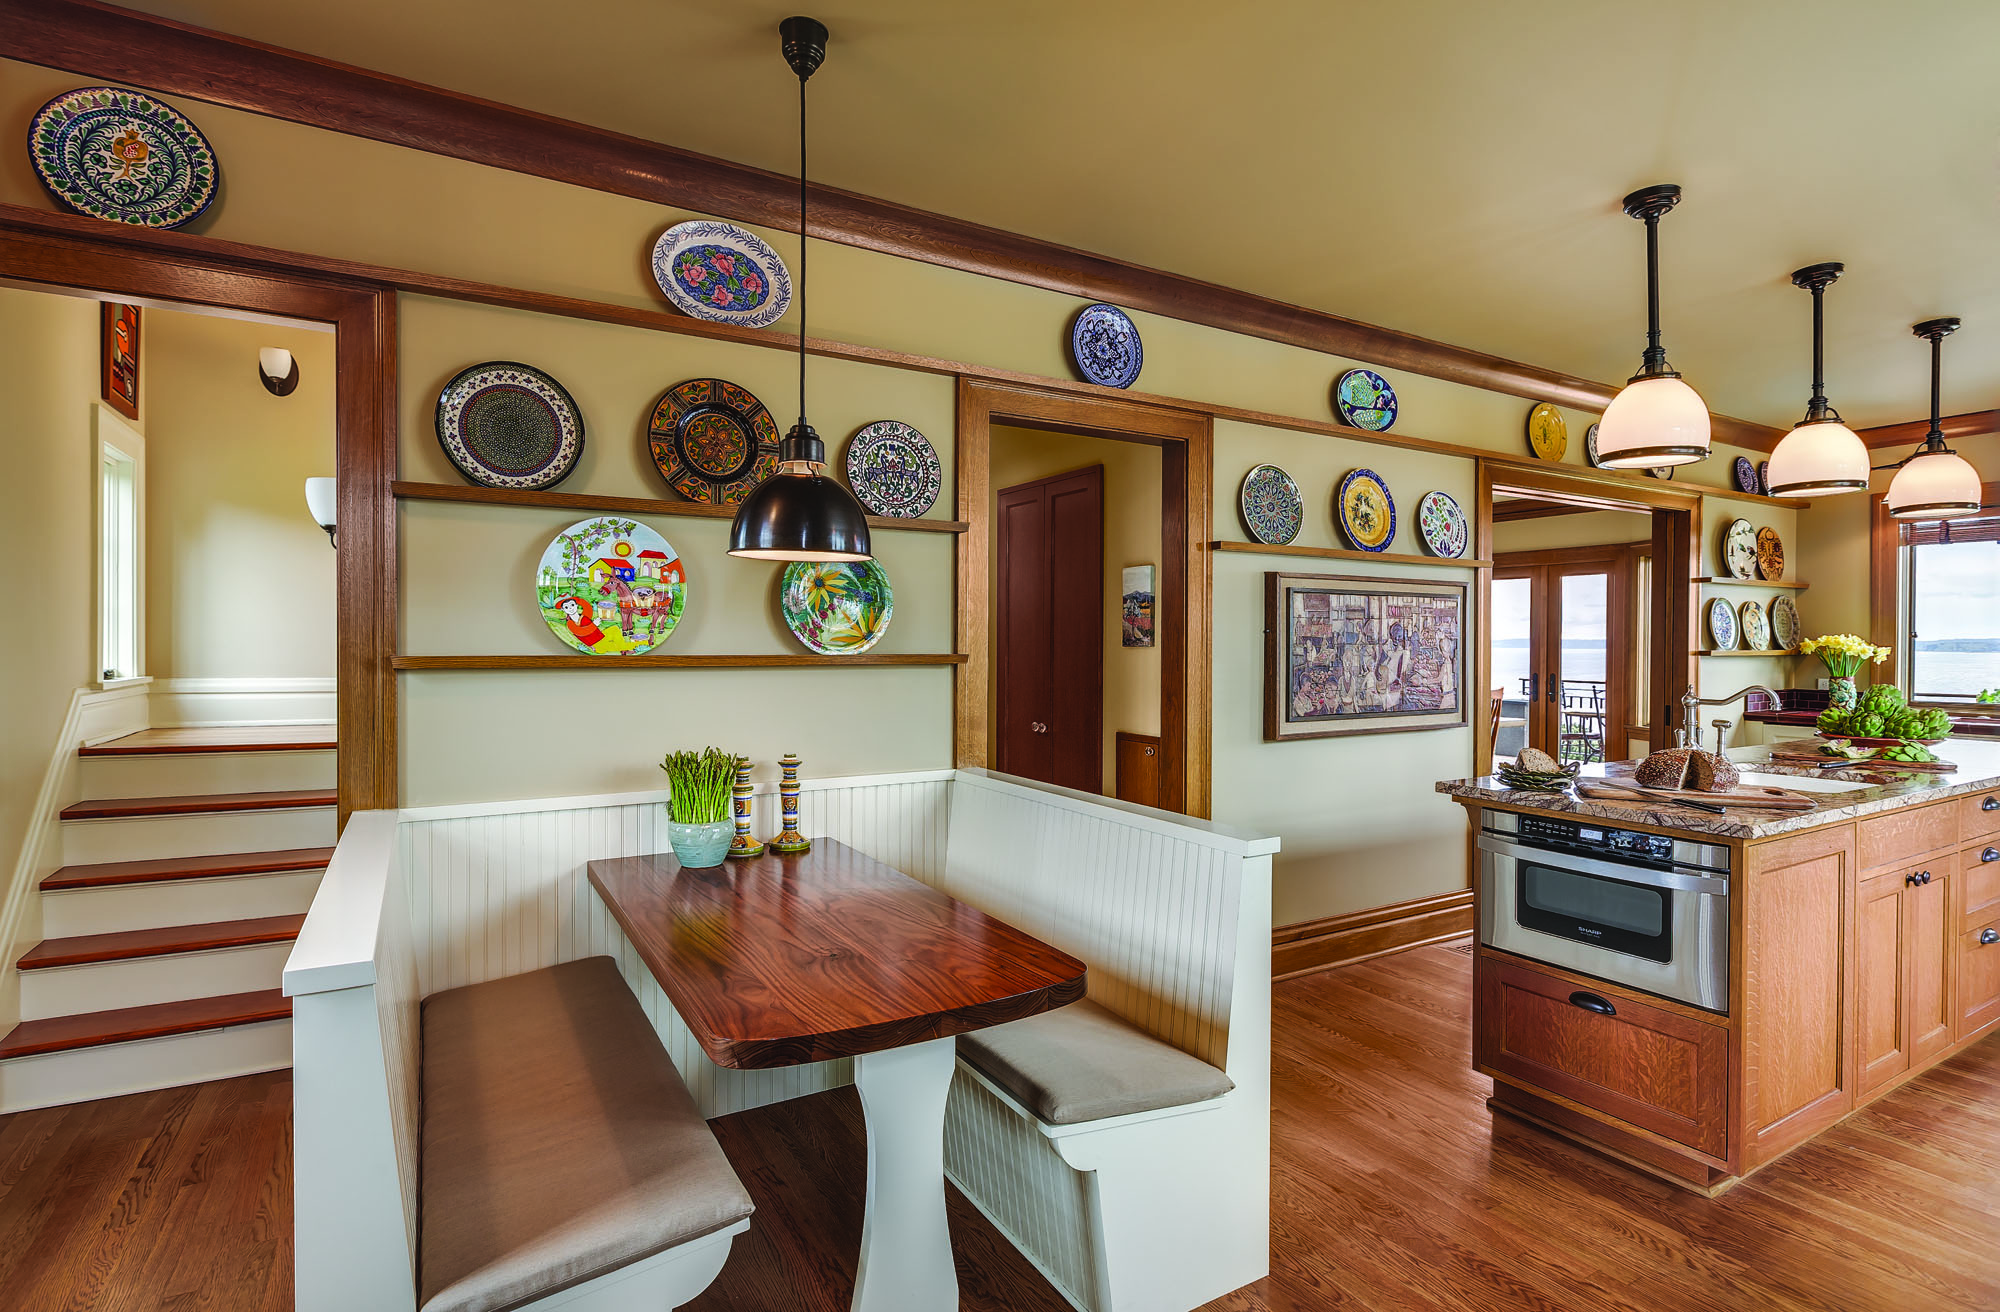 The banquette has a custom walnut tabletop; it's a quick step to the microwave oven at the end of the island. The back stairs are here; a pantry is in the main hall entry to the kitchen.